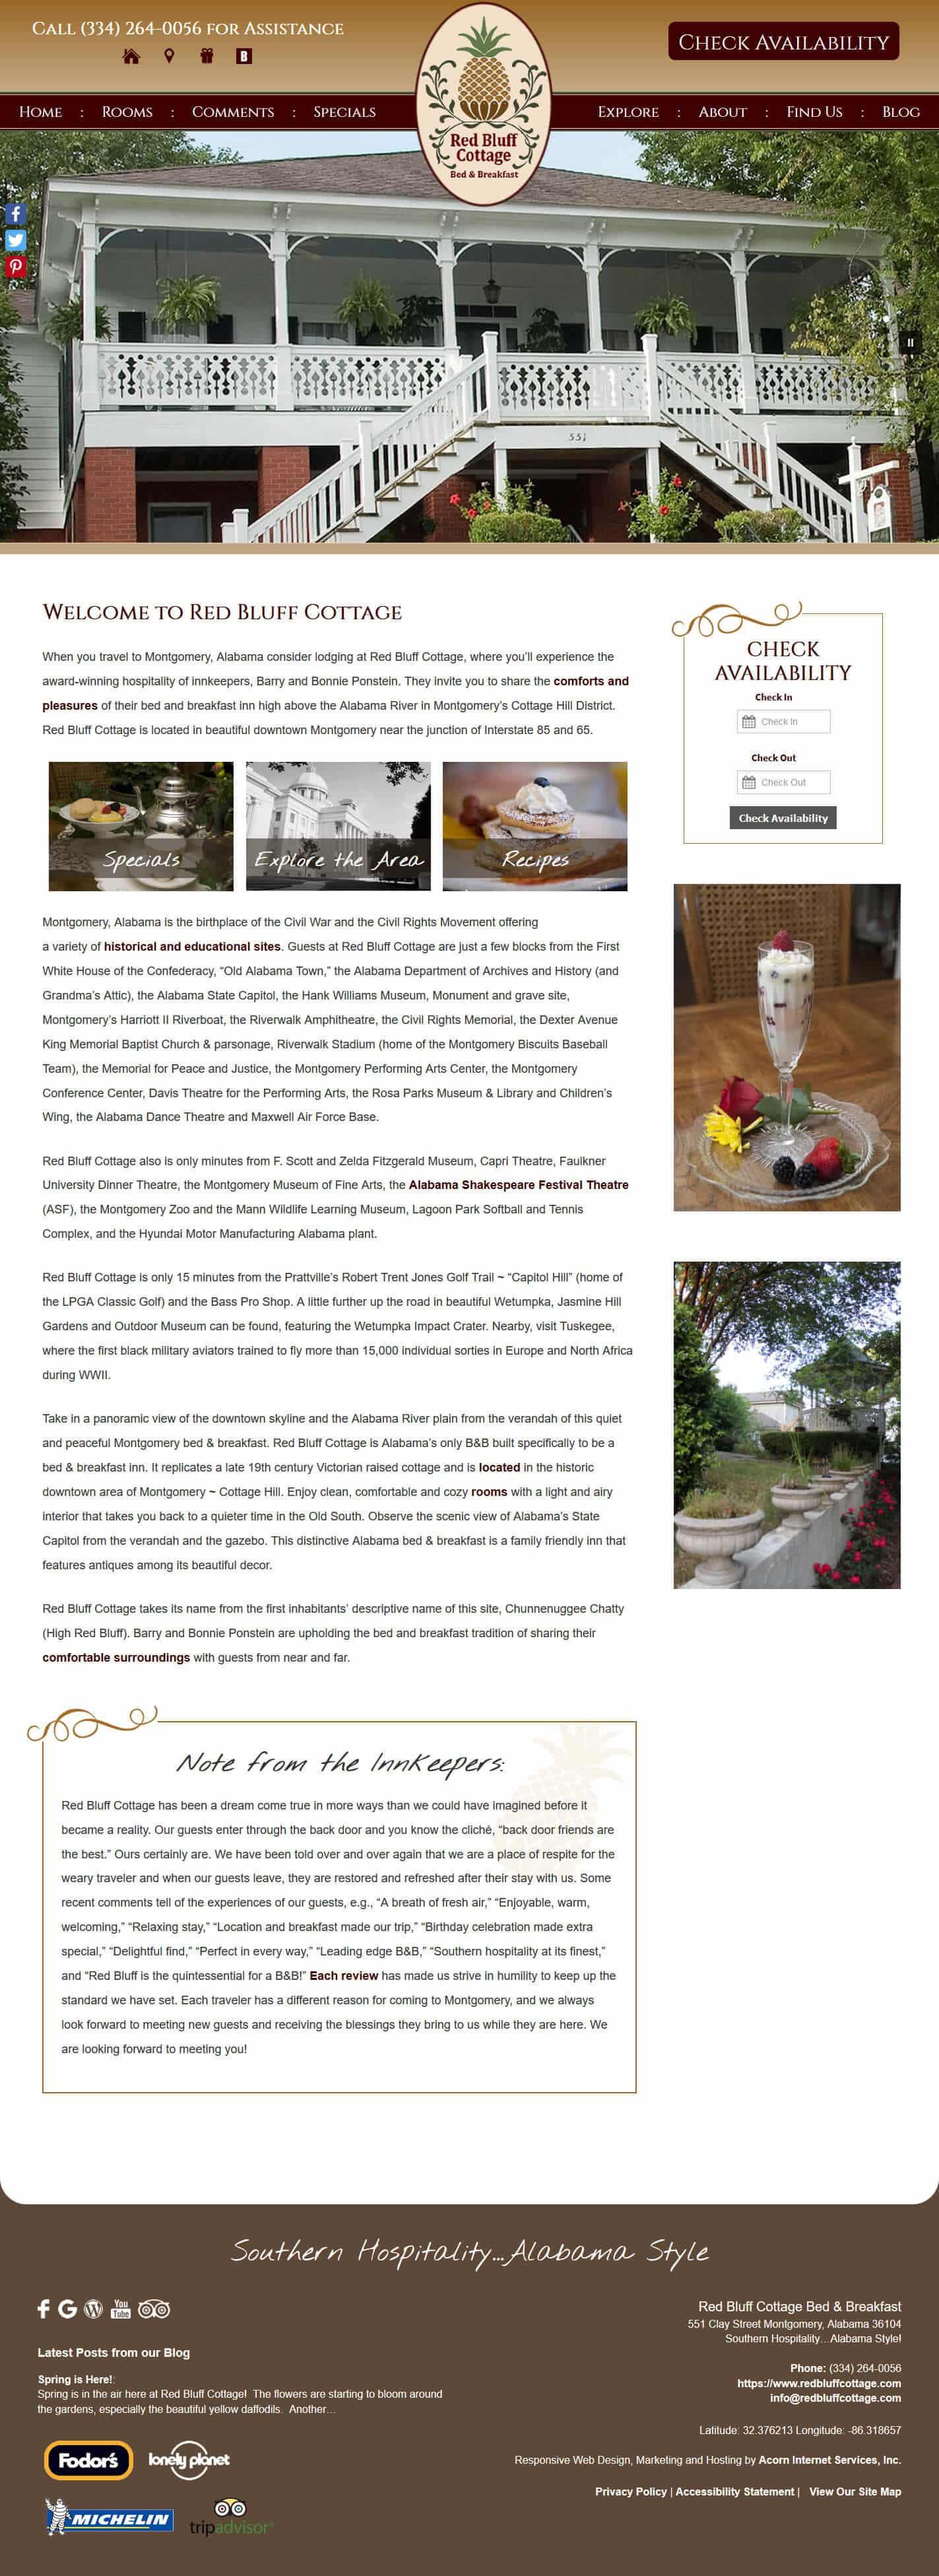 Red Bluff Cottage's Welcome page of their website